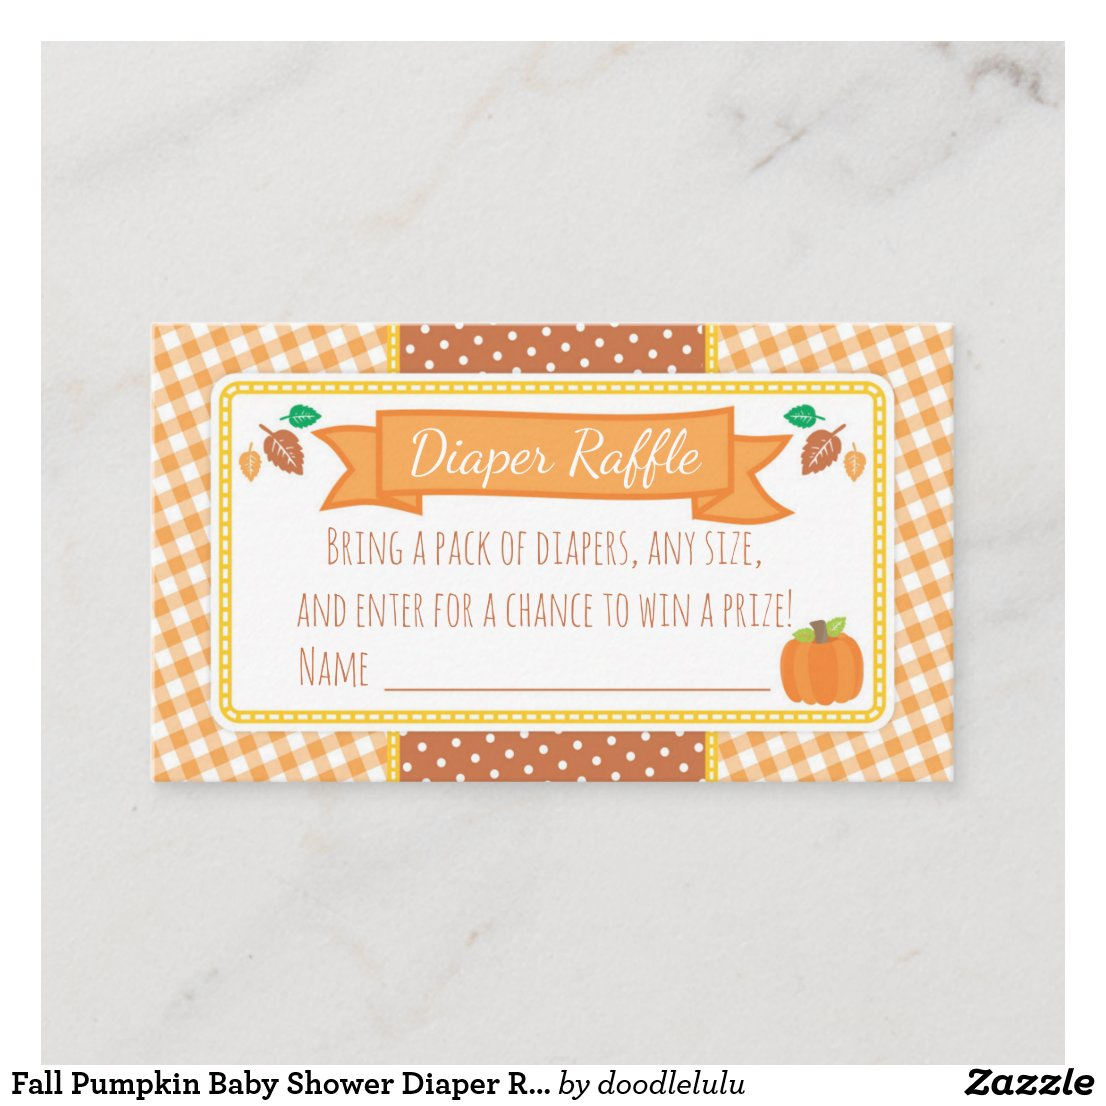 Fall Pumpkin Baby Shower Diaper Raffle Ticket Enclosure Card